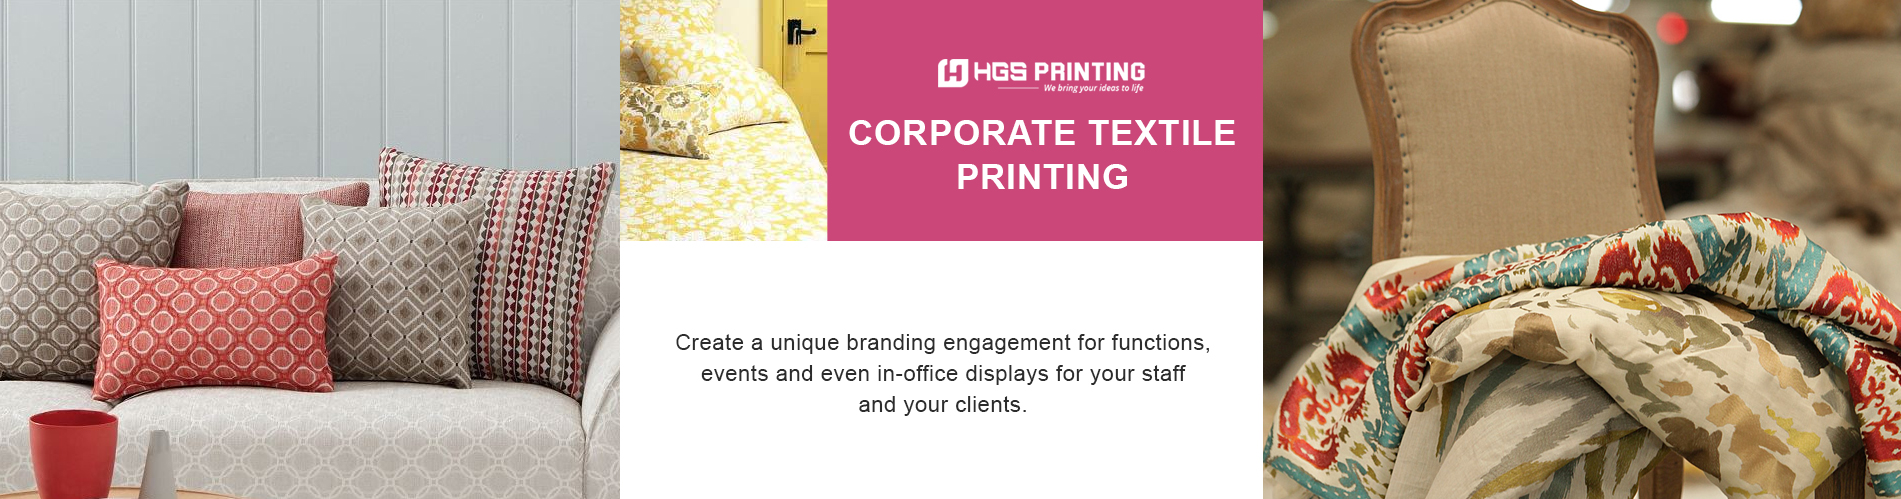 Image for Digital textile printing services